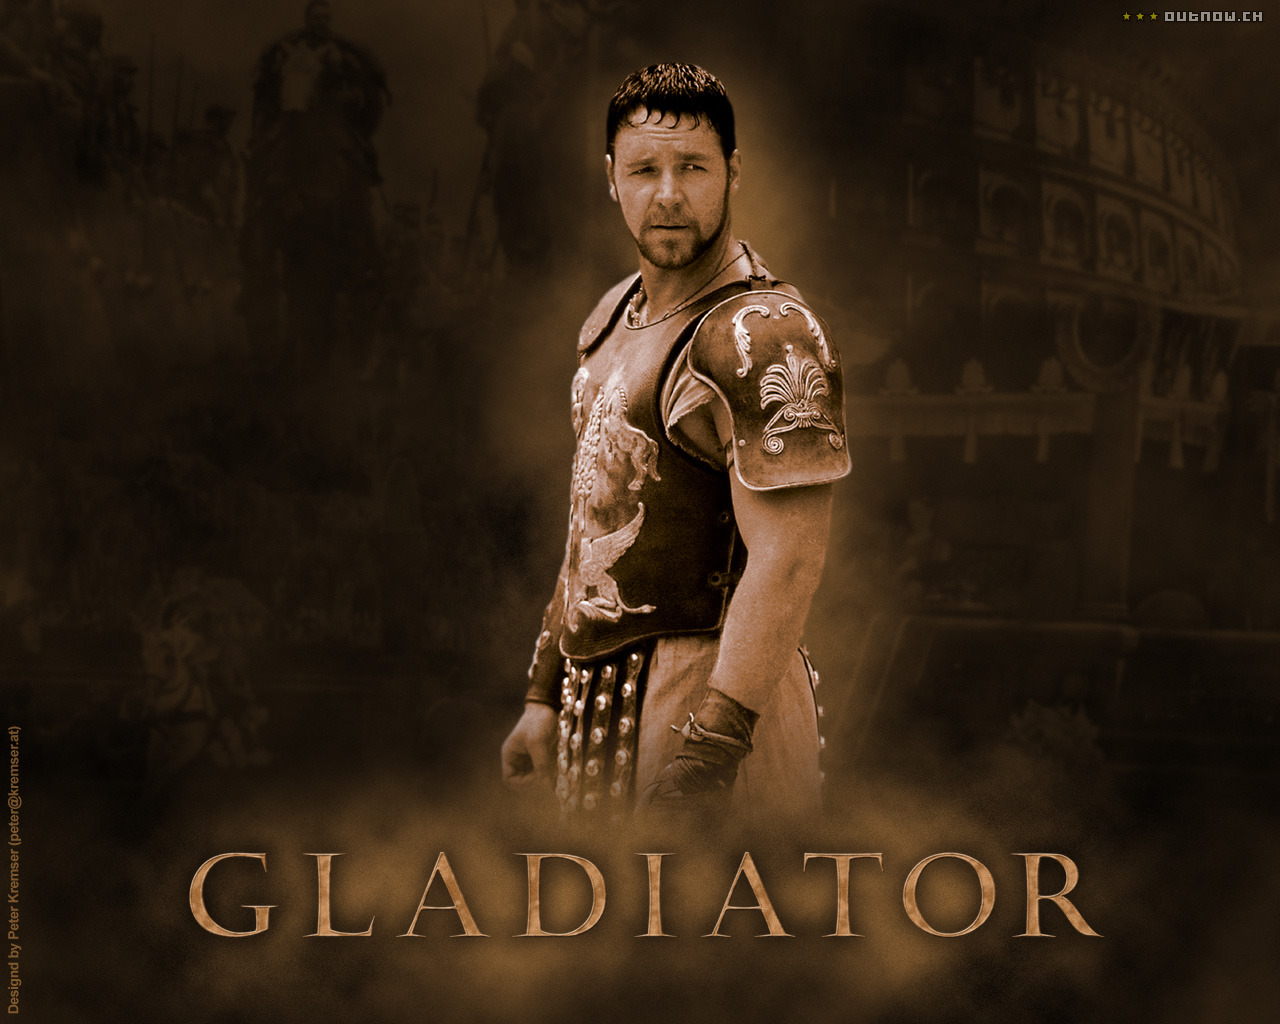 a review of the film the gladiator Films dealing with adventure and high drama in antiquity were cinematic fixtures pretty much from the inception of moviemaking through their burnout in the '60s.